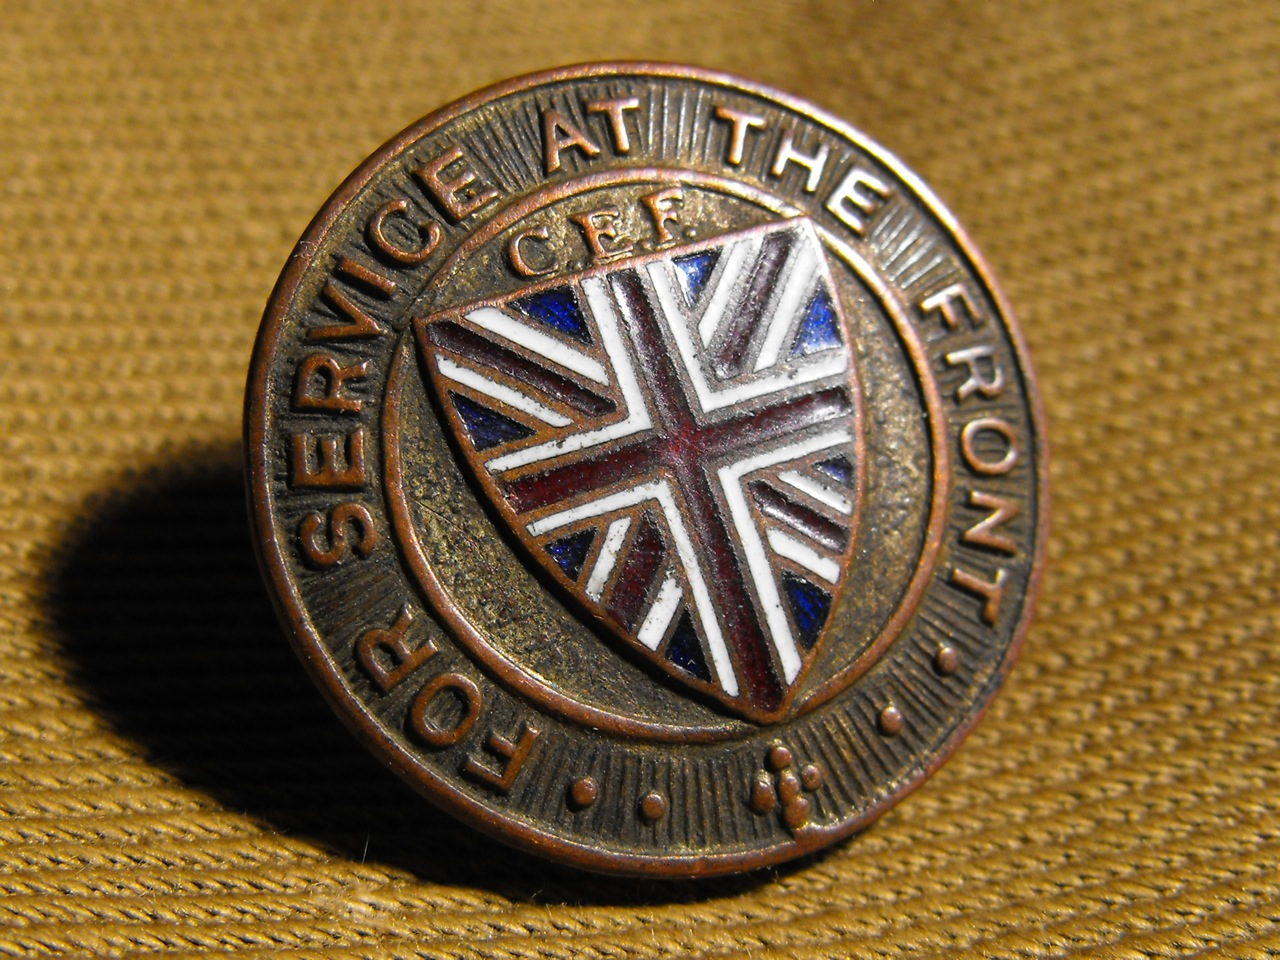 For Services at the Front (no date)